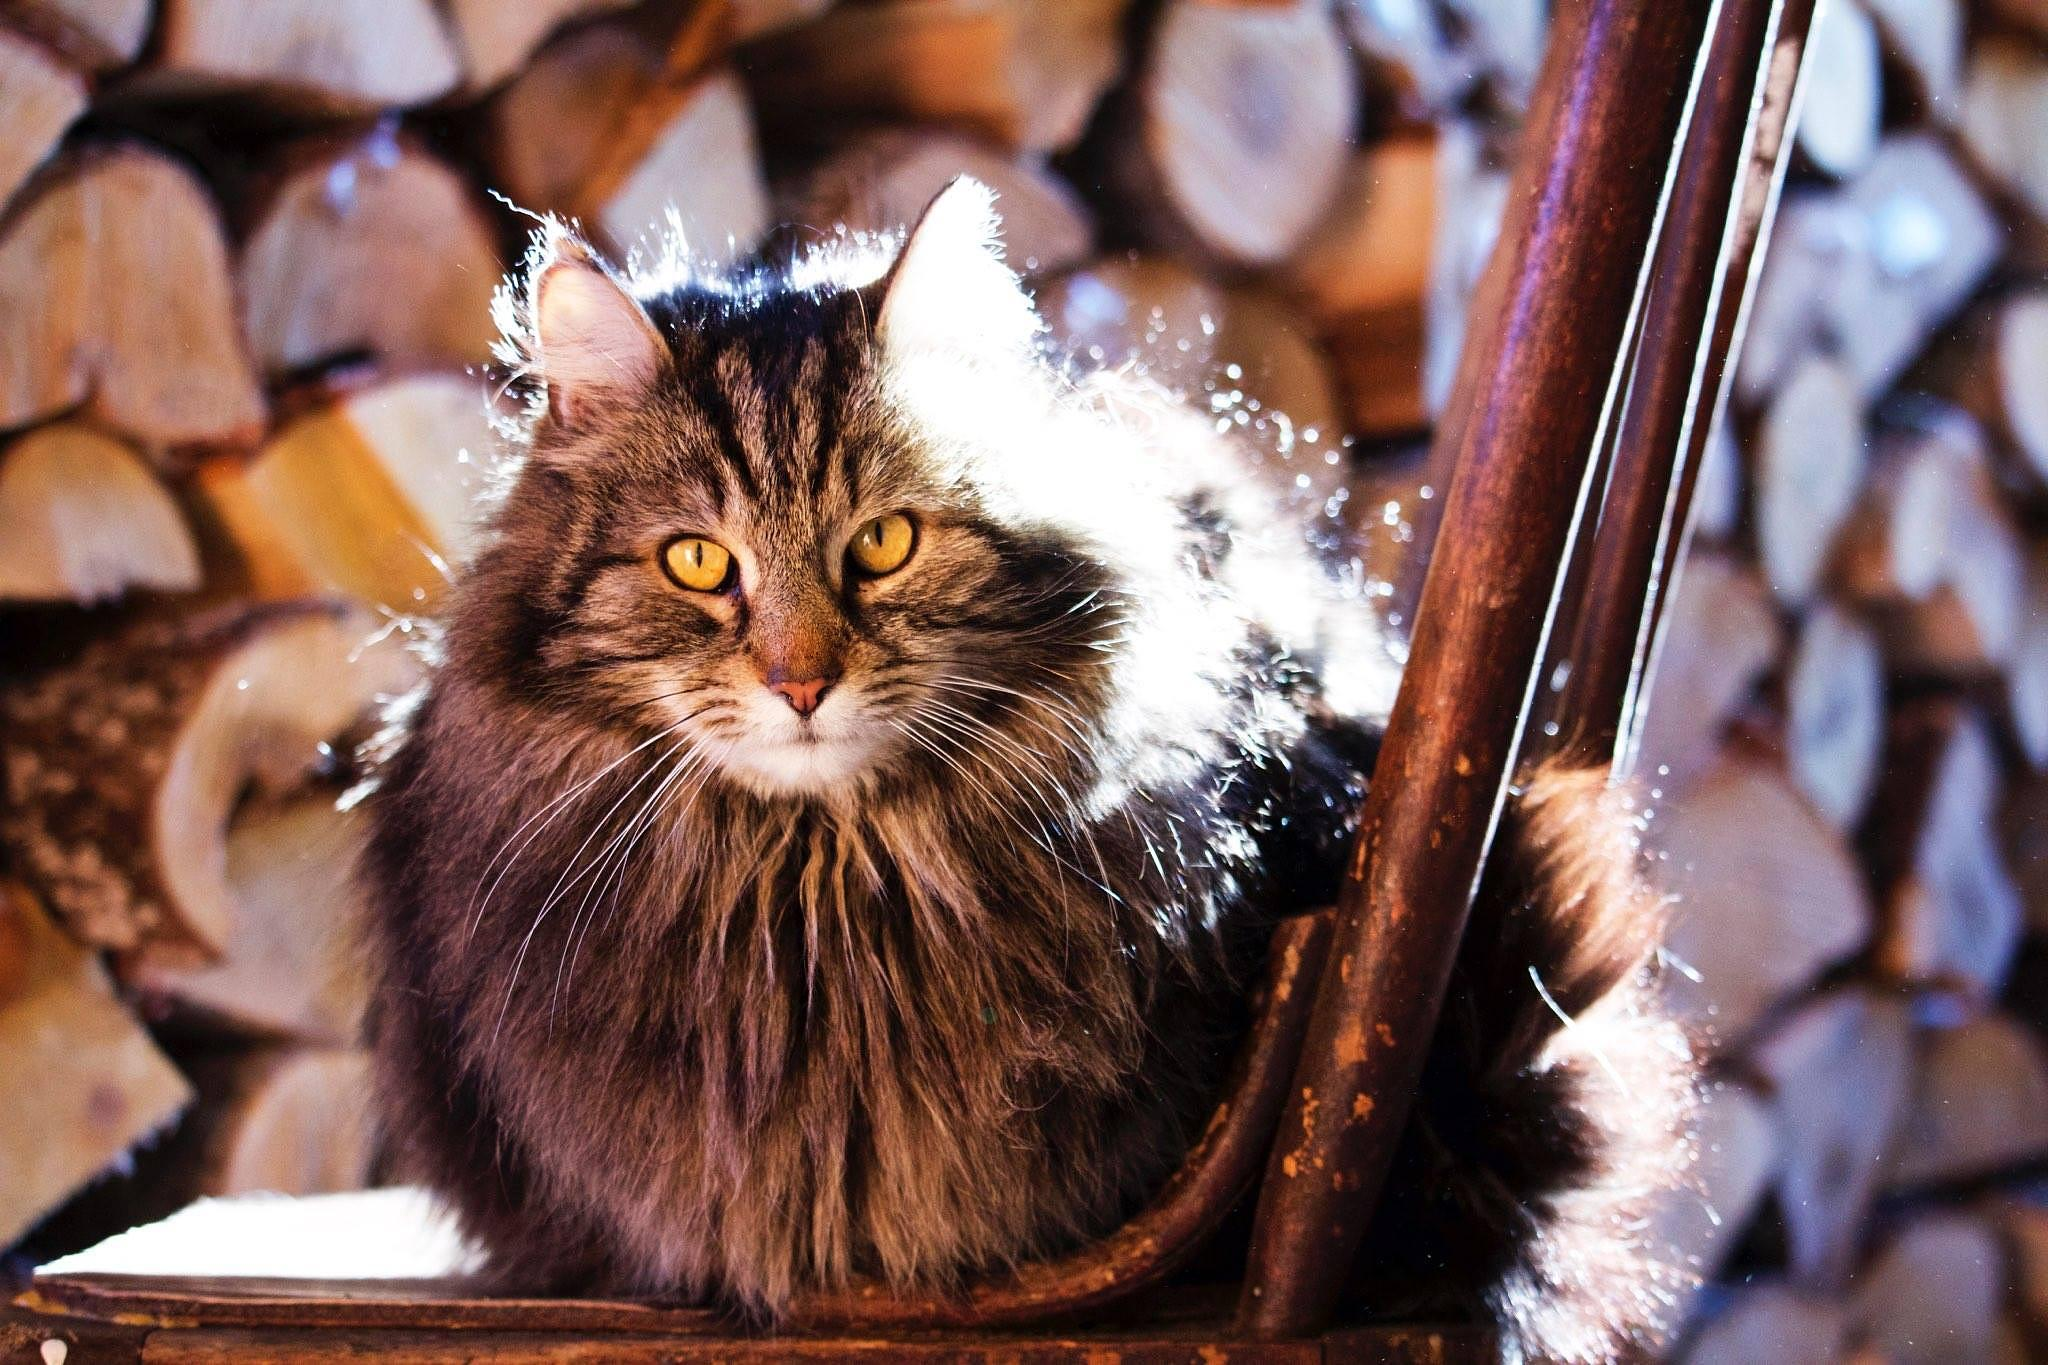 cat in the wood shed  by kim.trevors